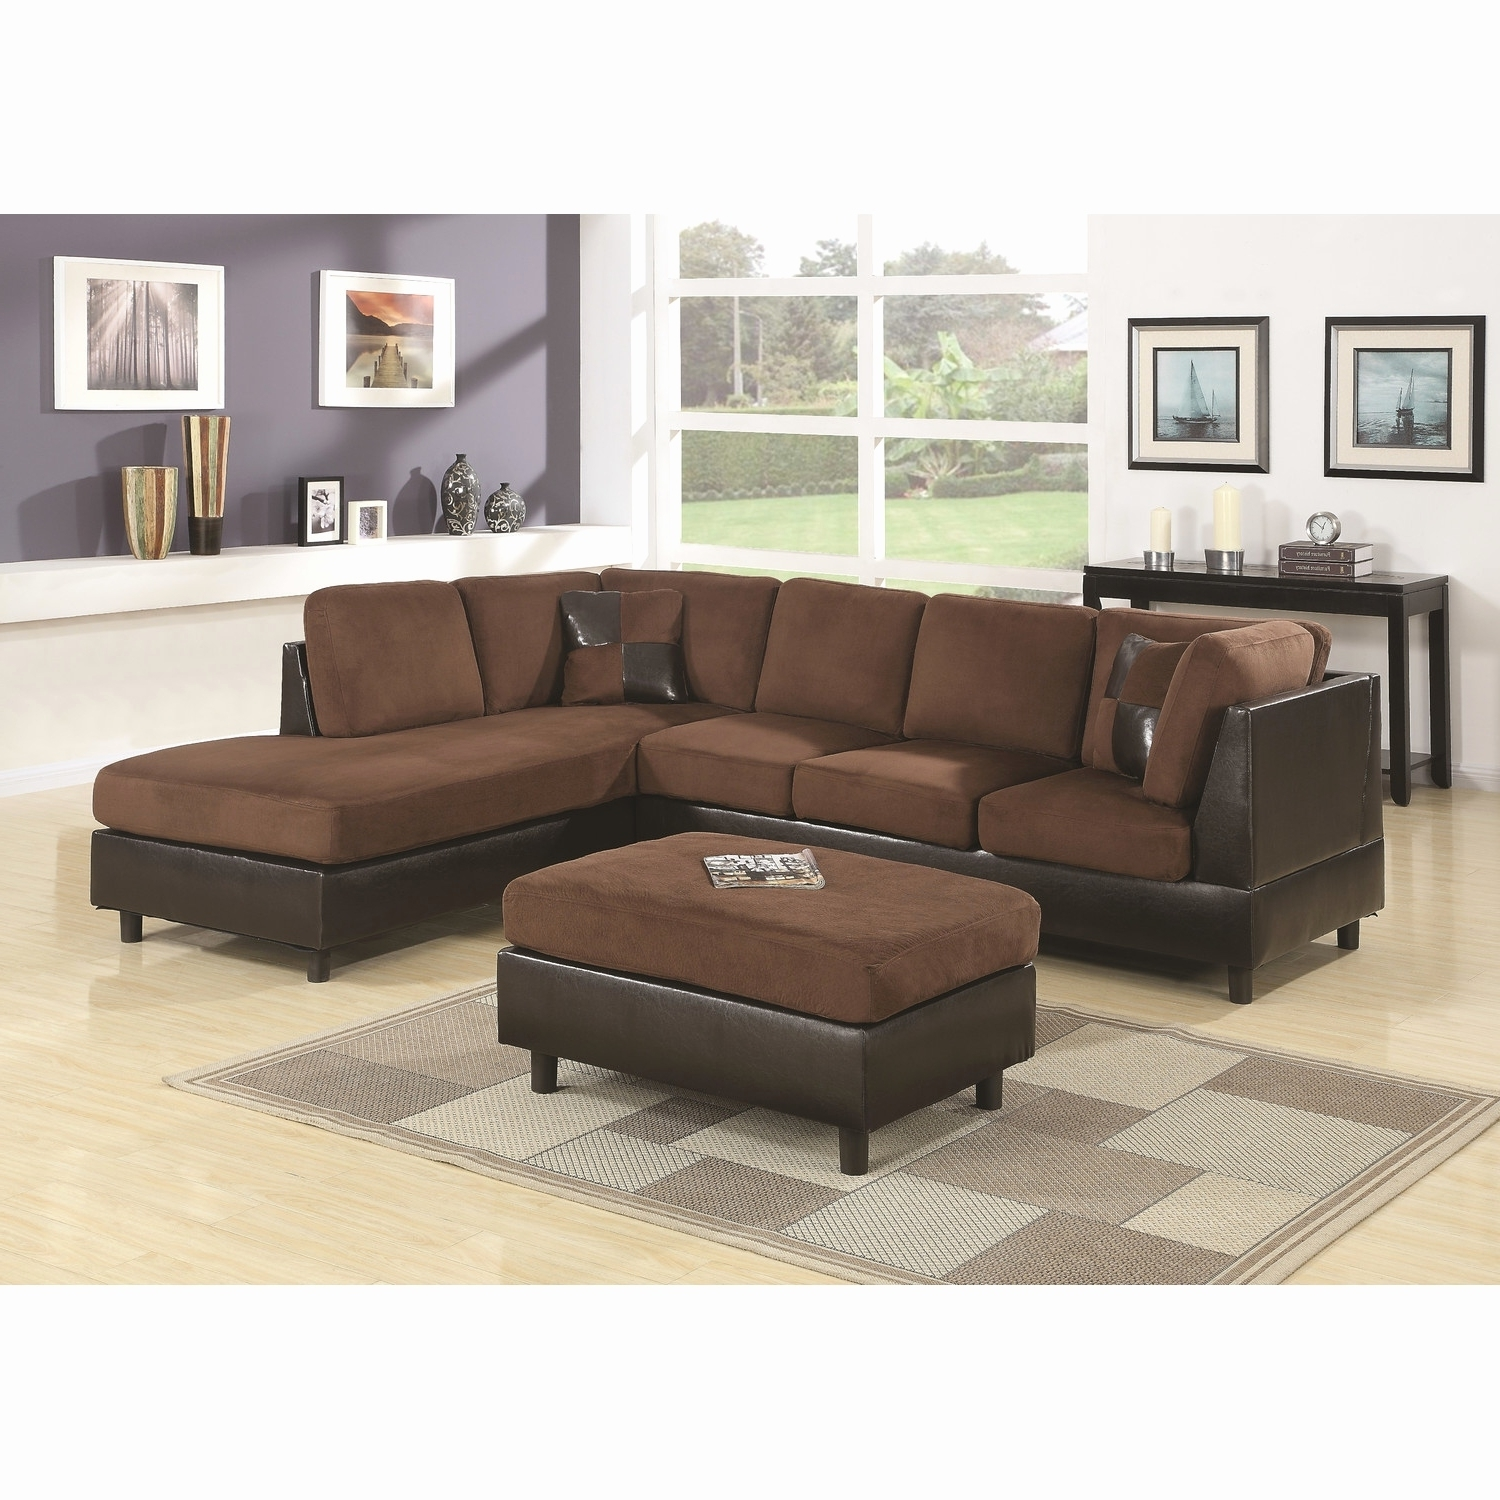 Sectional Sofas In San Antonio Throughout Well Liked New Leather Sofas San Antonio 2018 – Couches And Sofas Ideas (View 12 of 15)